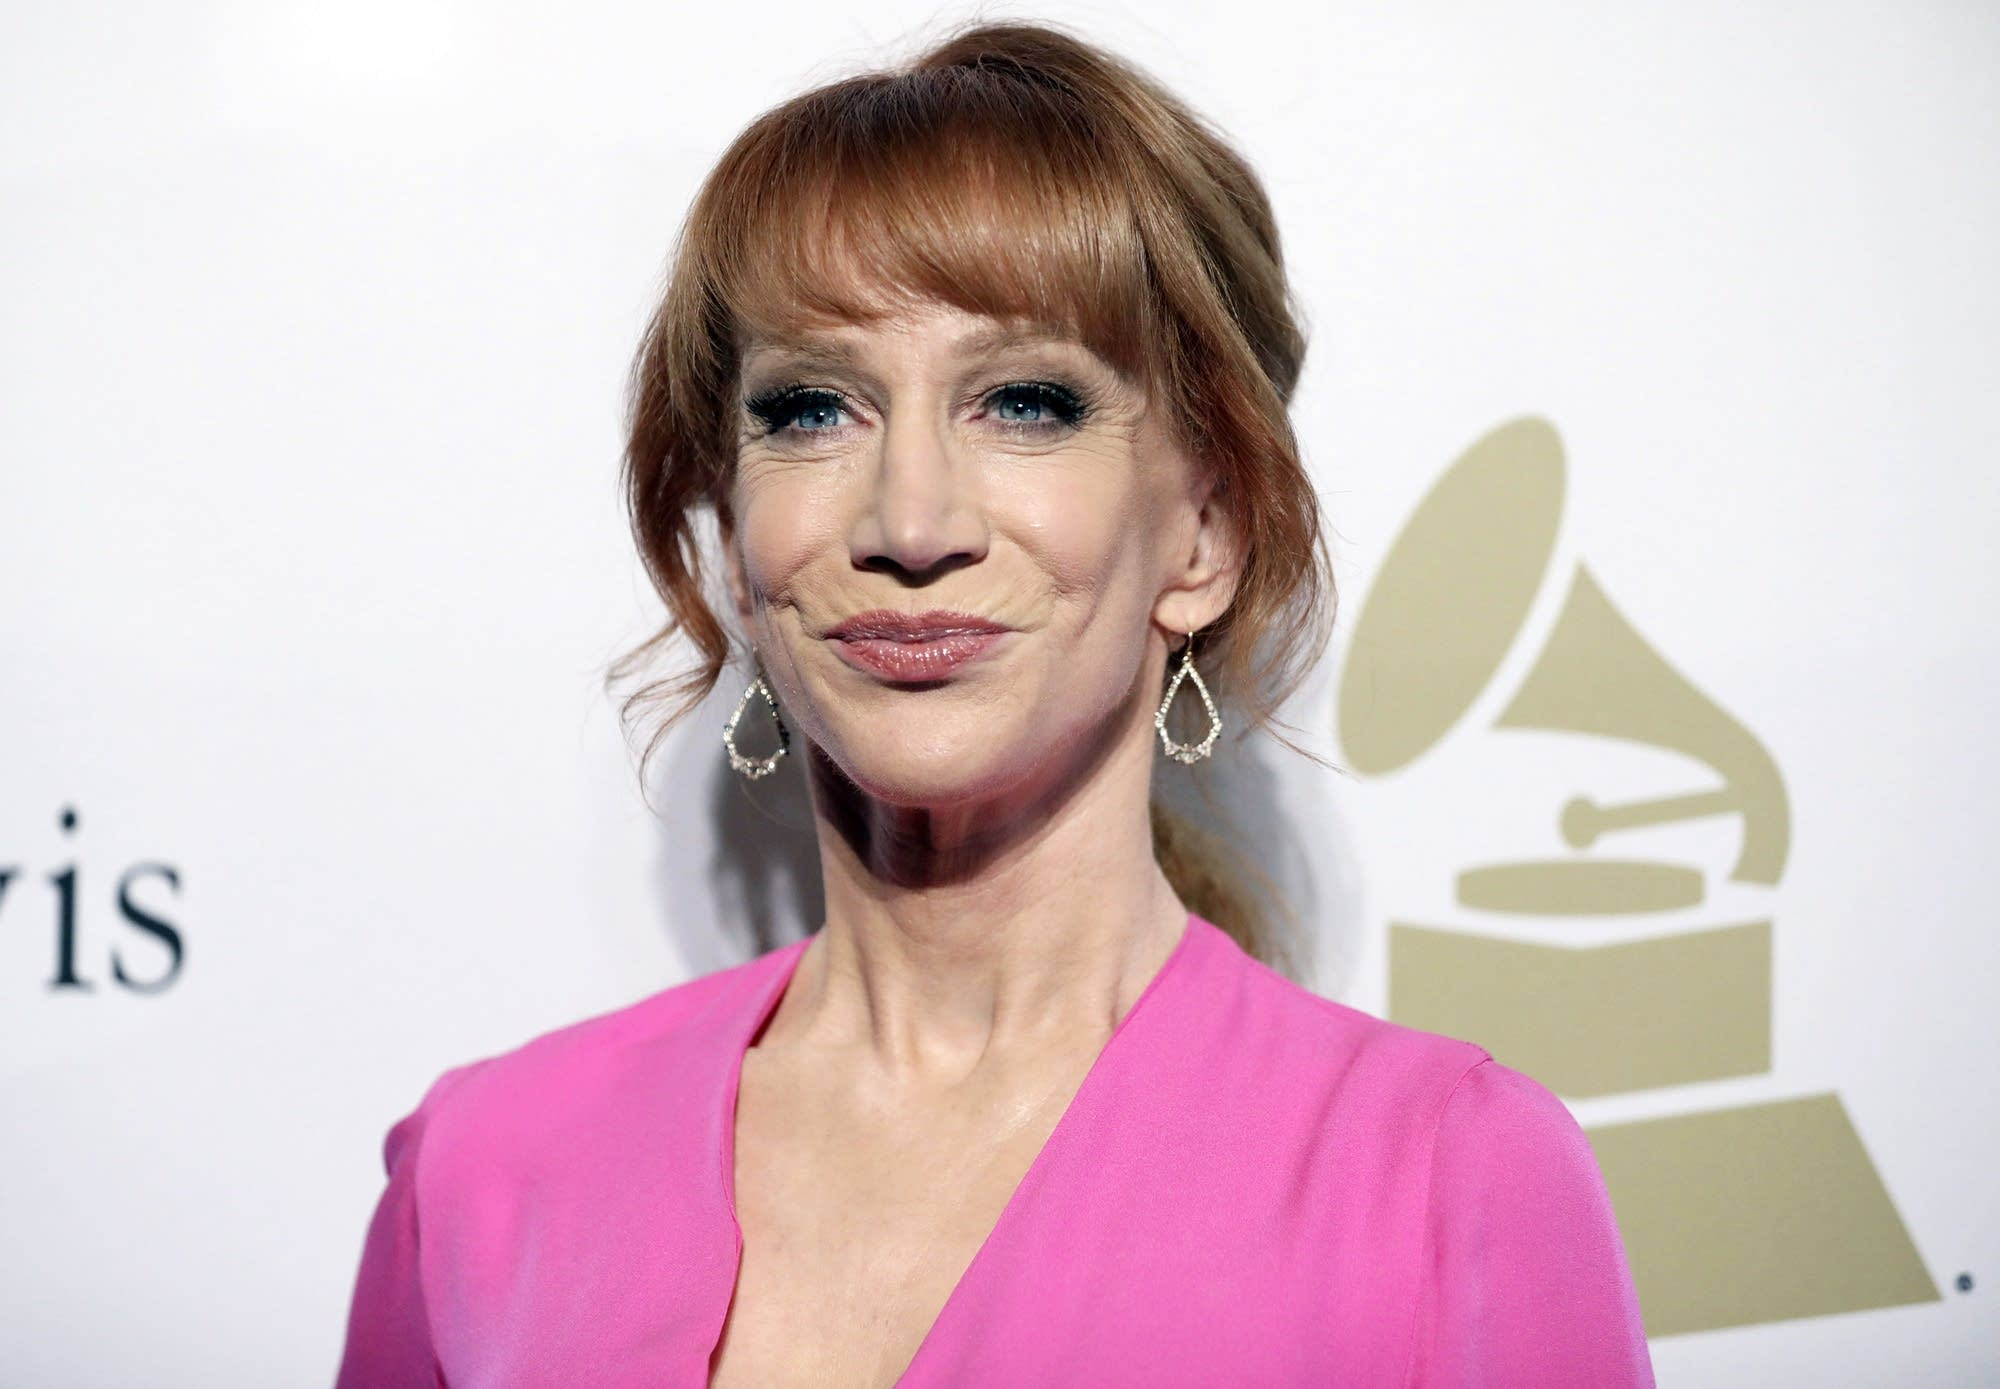 Trump loses head in video; Kathy Griffin loses her job